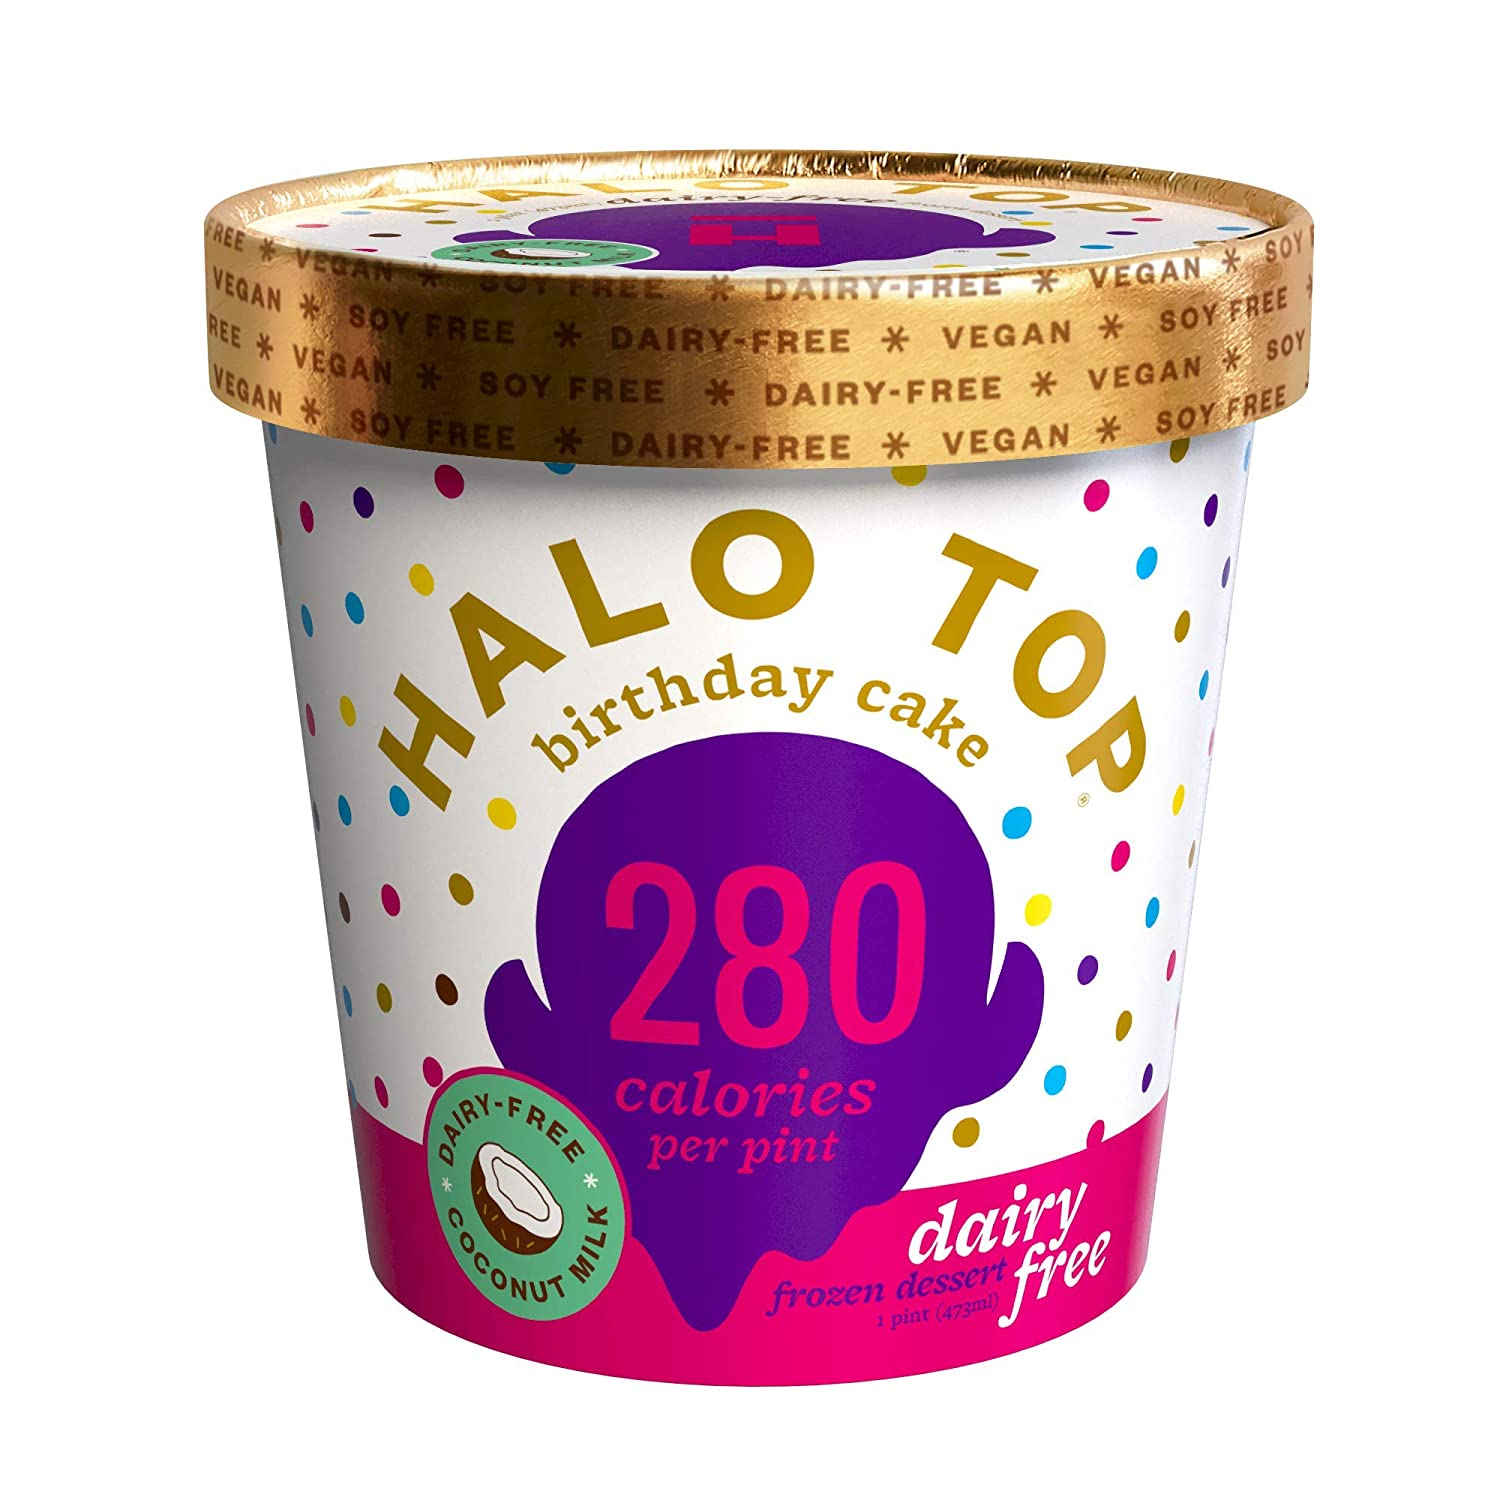 Amazing Halo Top Dairy Free Birthday Cake Pint 8 Count Amazon Com Birthday Cards Printable Benkemecafe Filternl